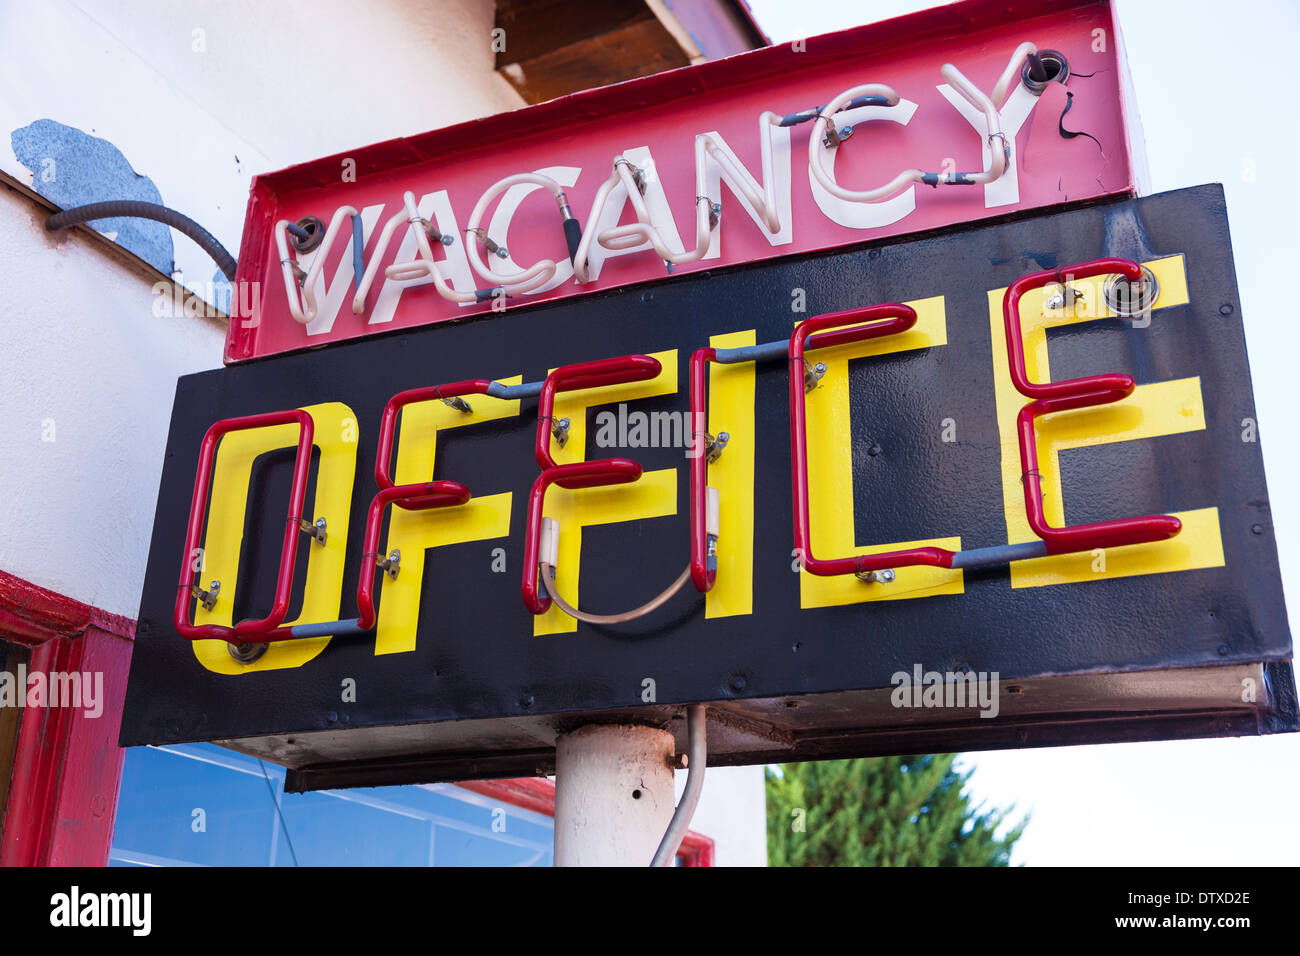 A retro neon vacancy office hotel sign - Stock Image